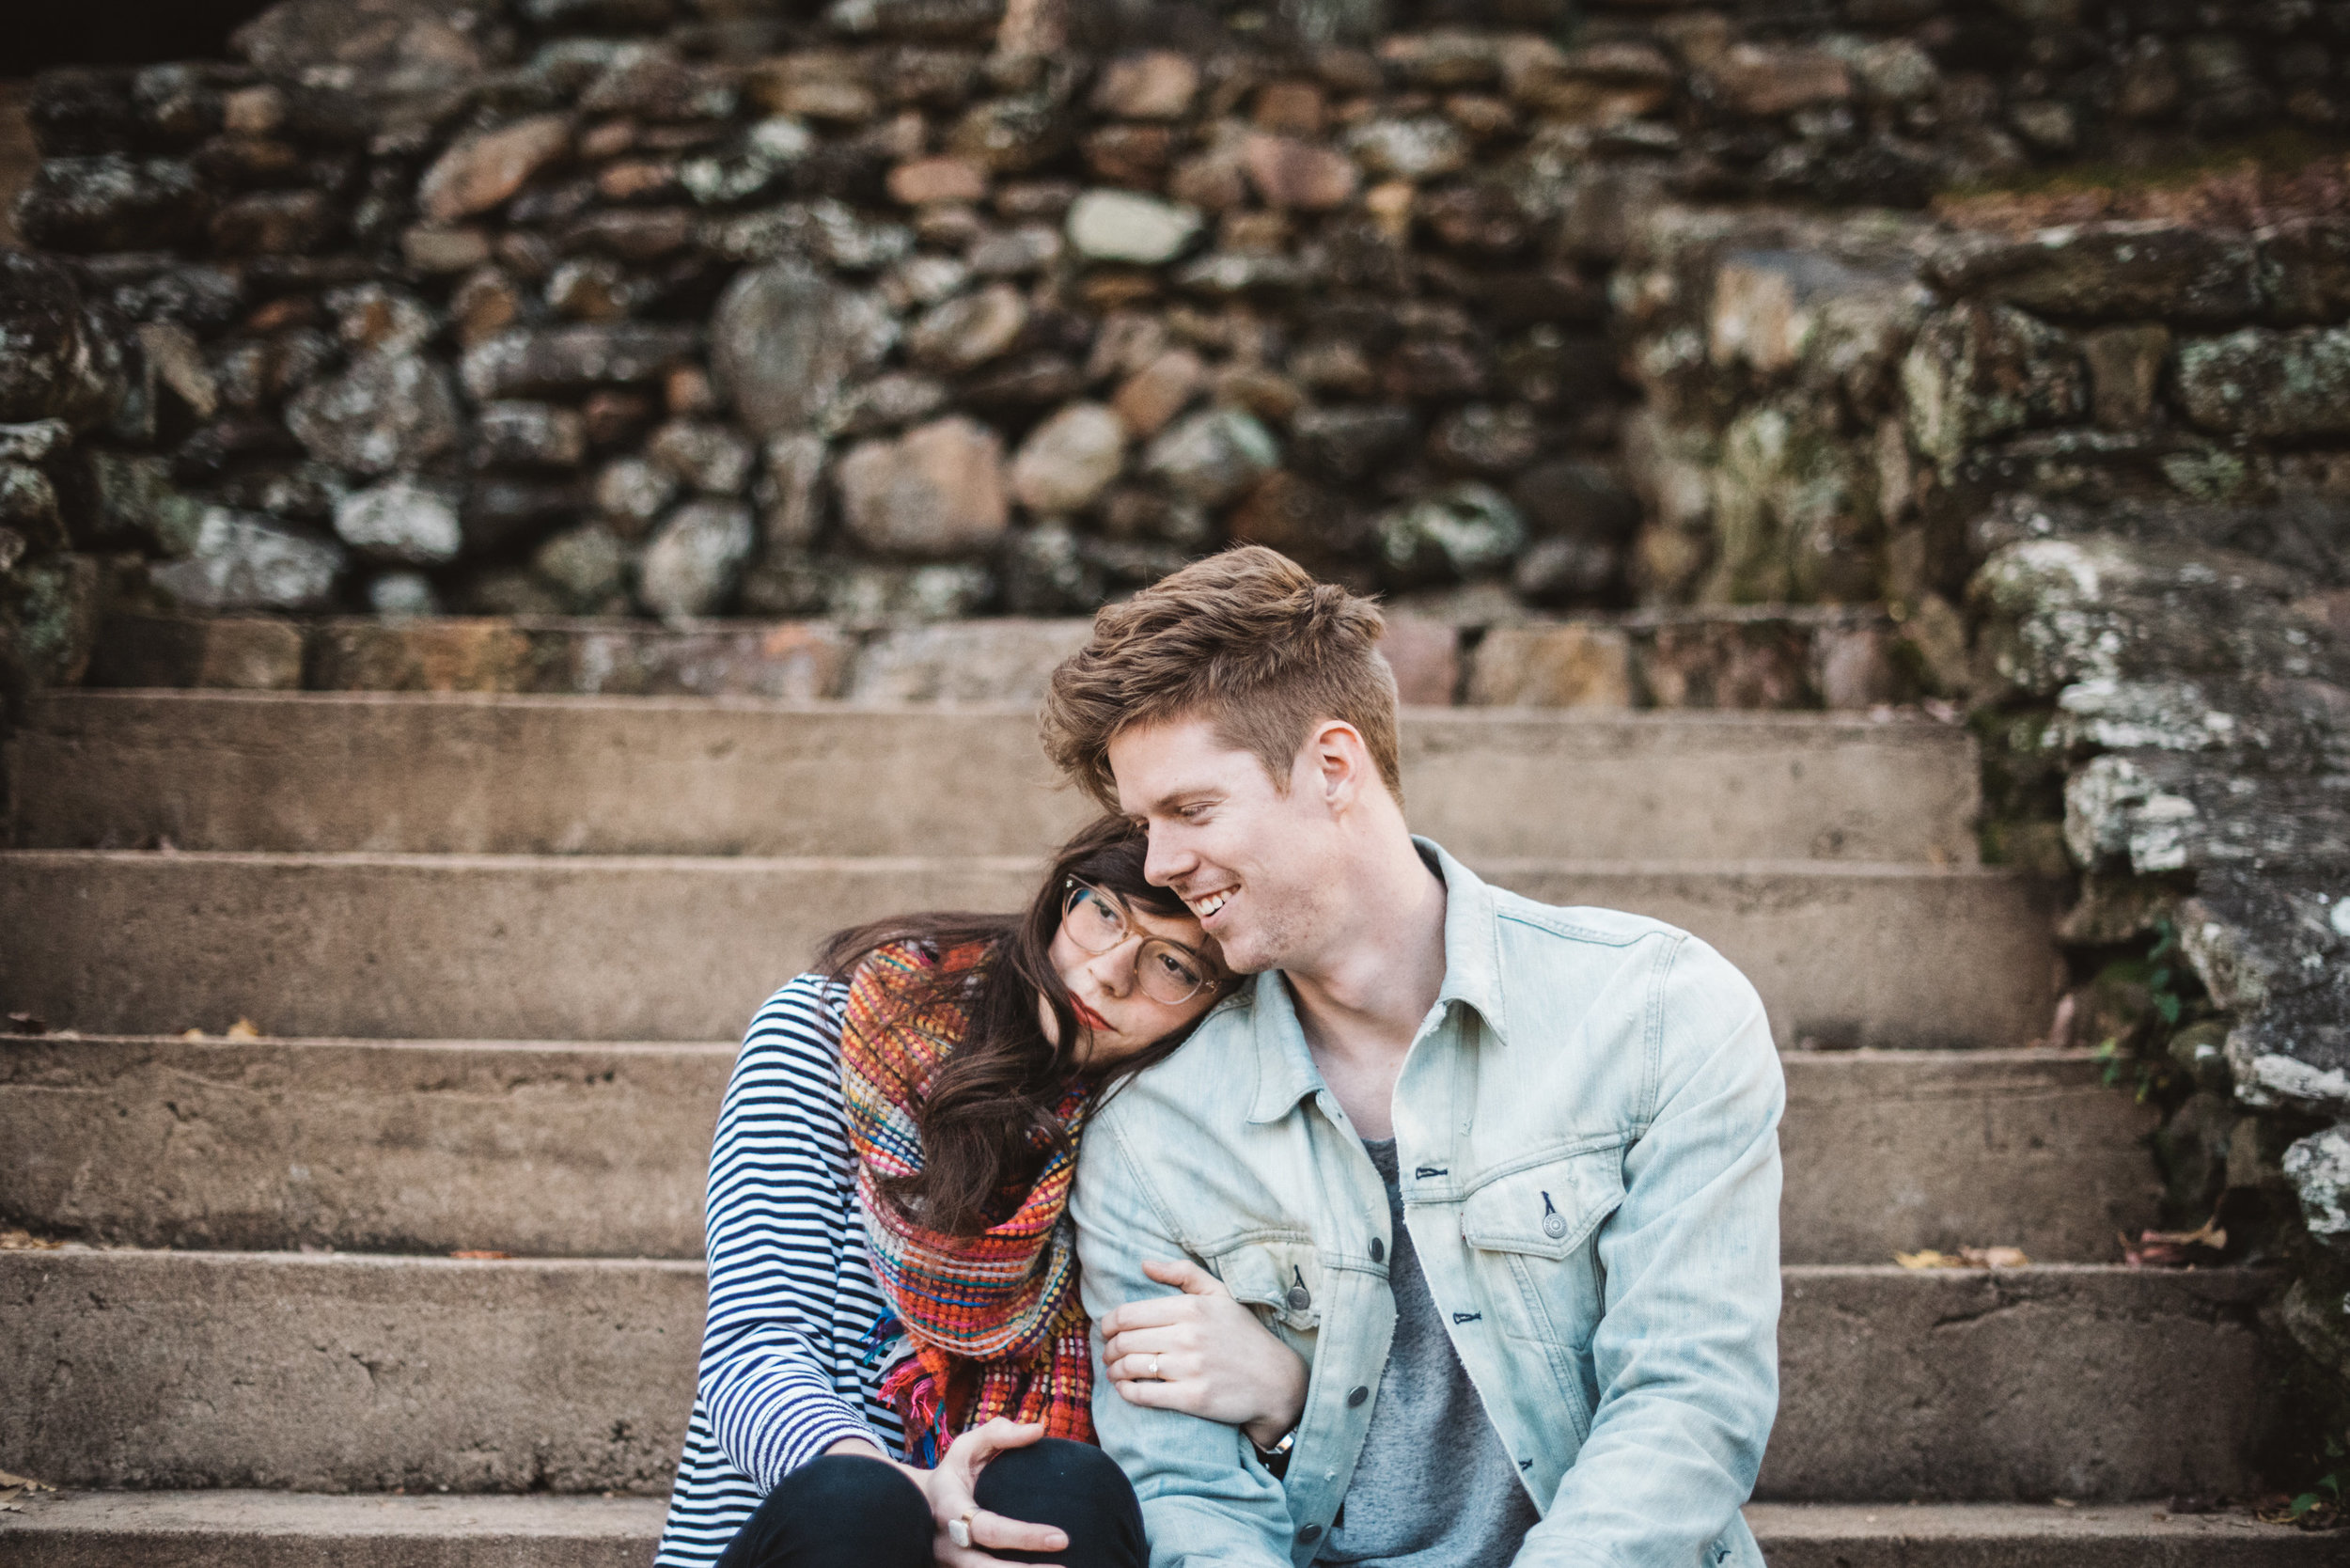 Asher Haley Engaged-asher and haley fin-0016.jpg